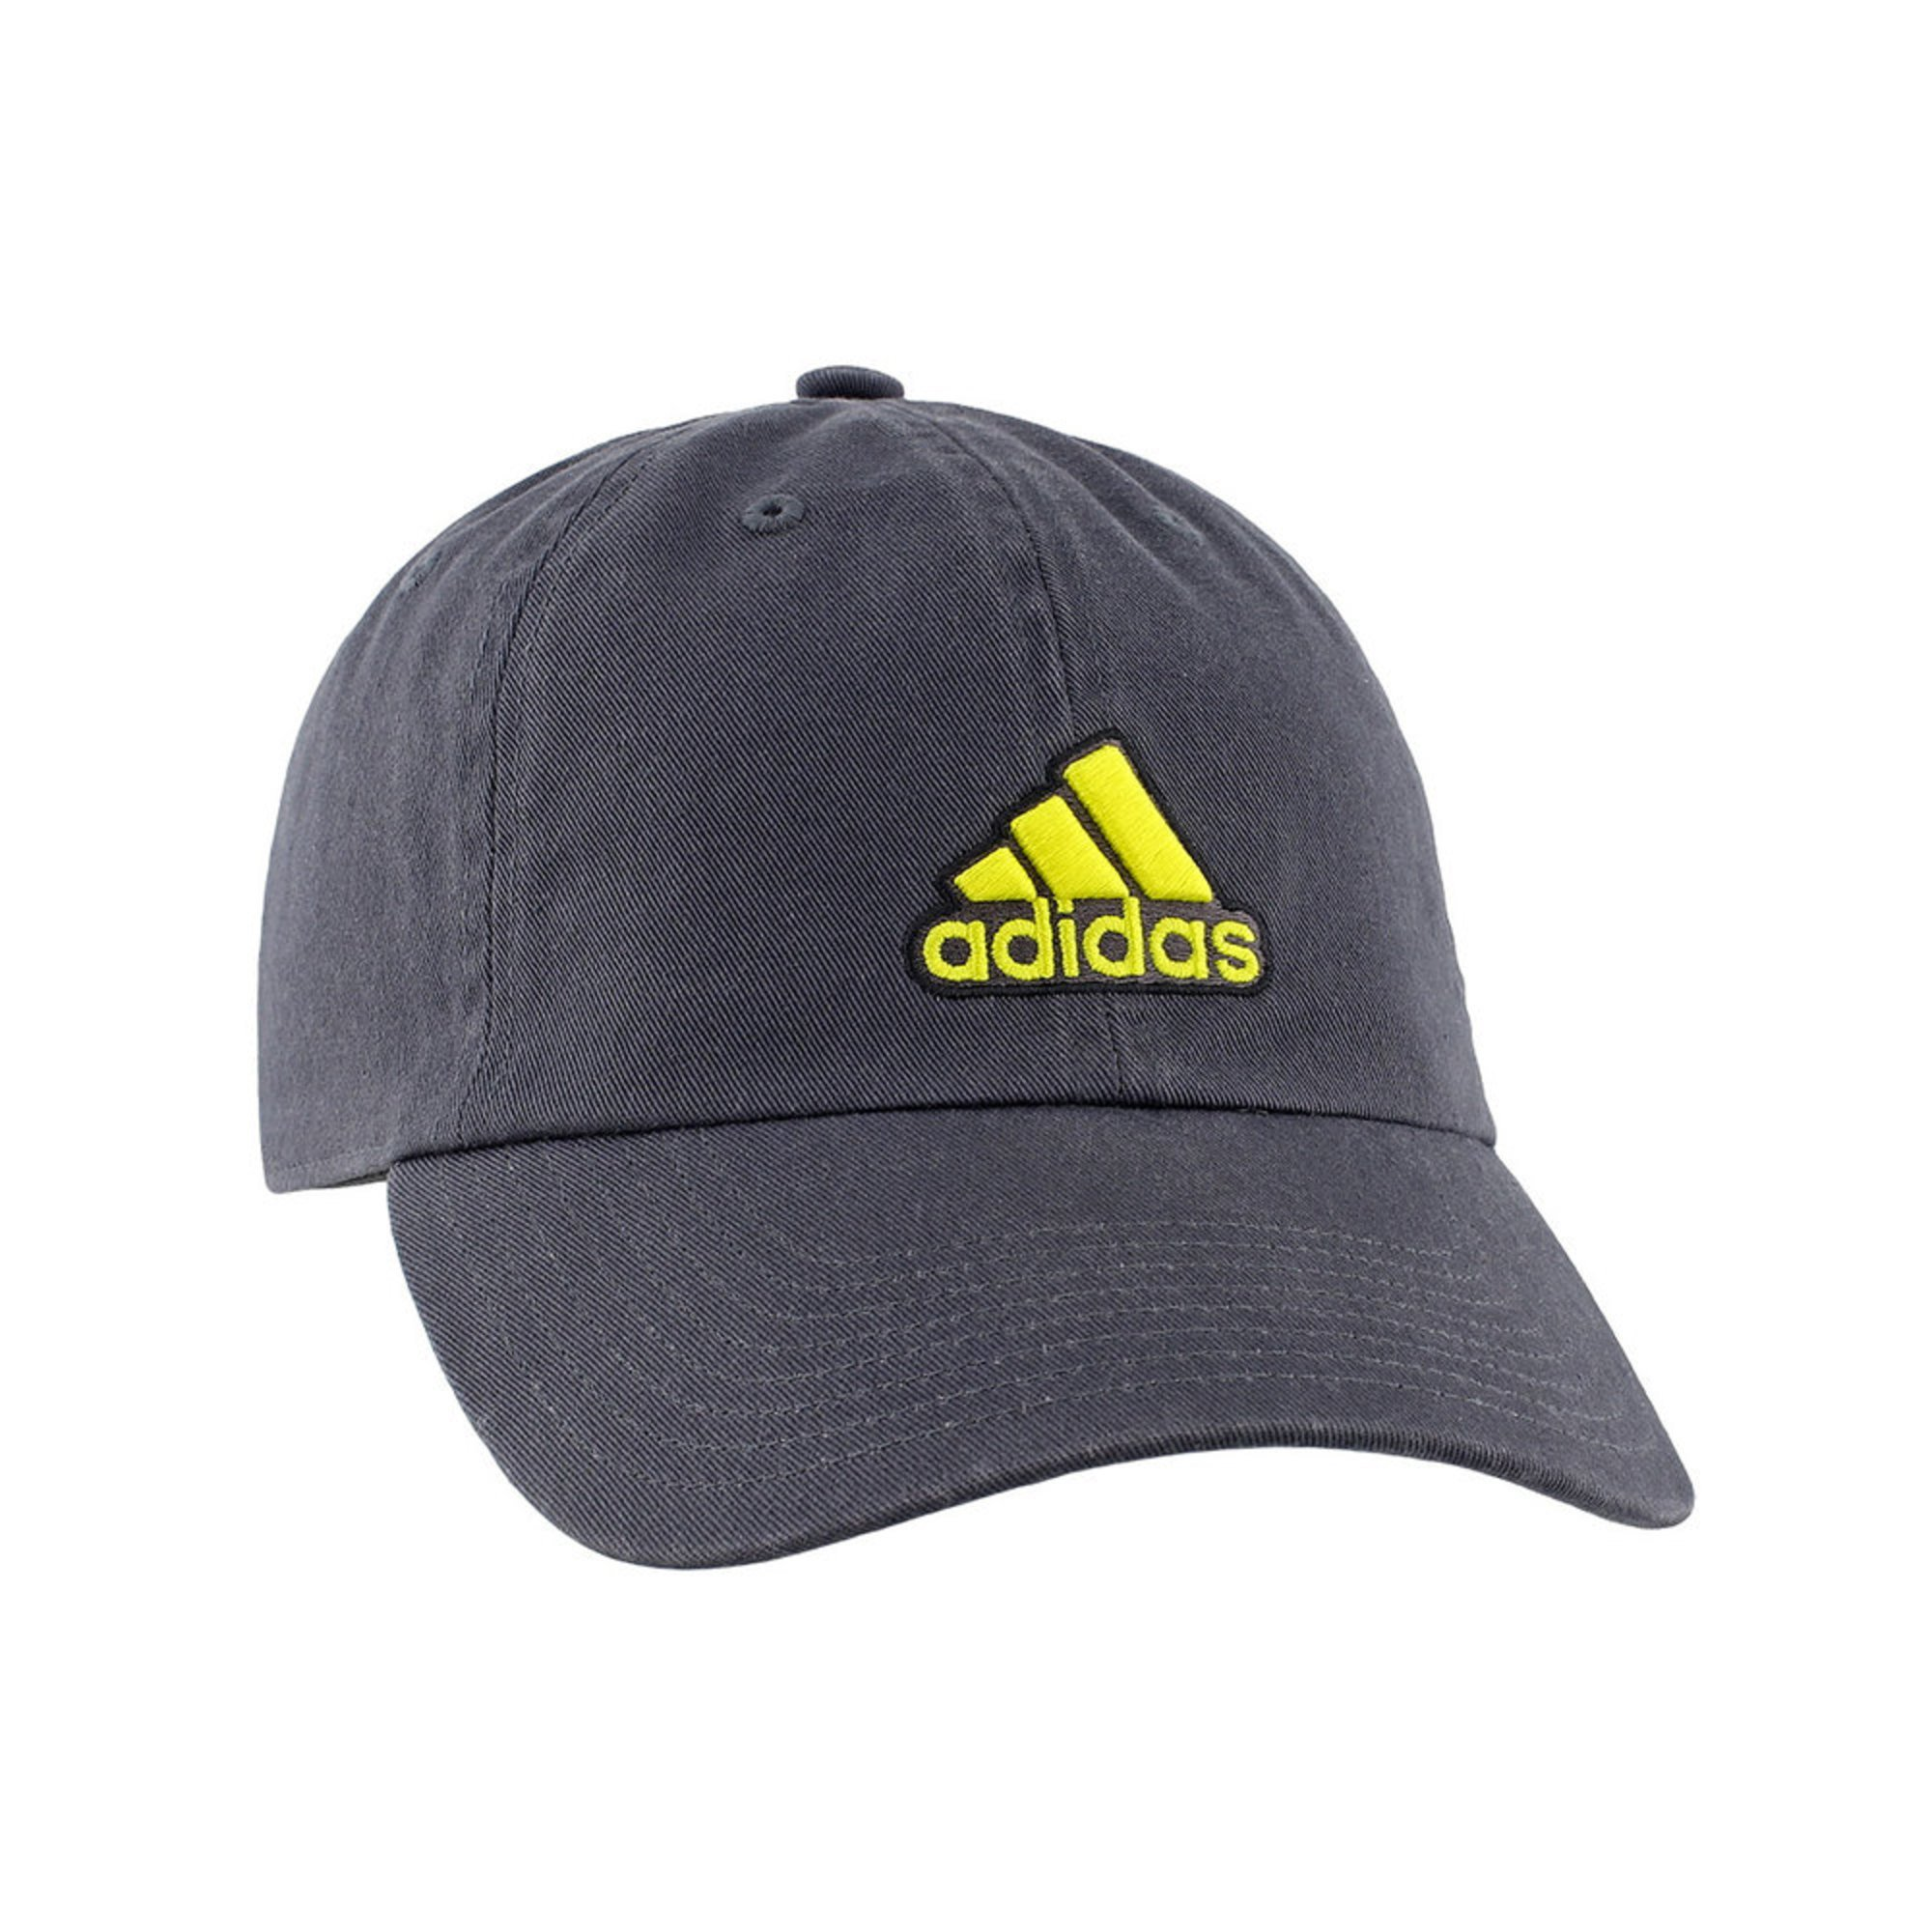 Adidas Men s Ultimate Hat  d8efb25c9f7